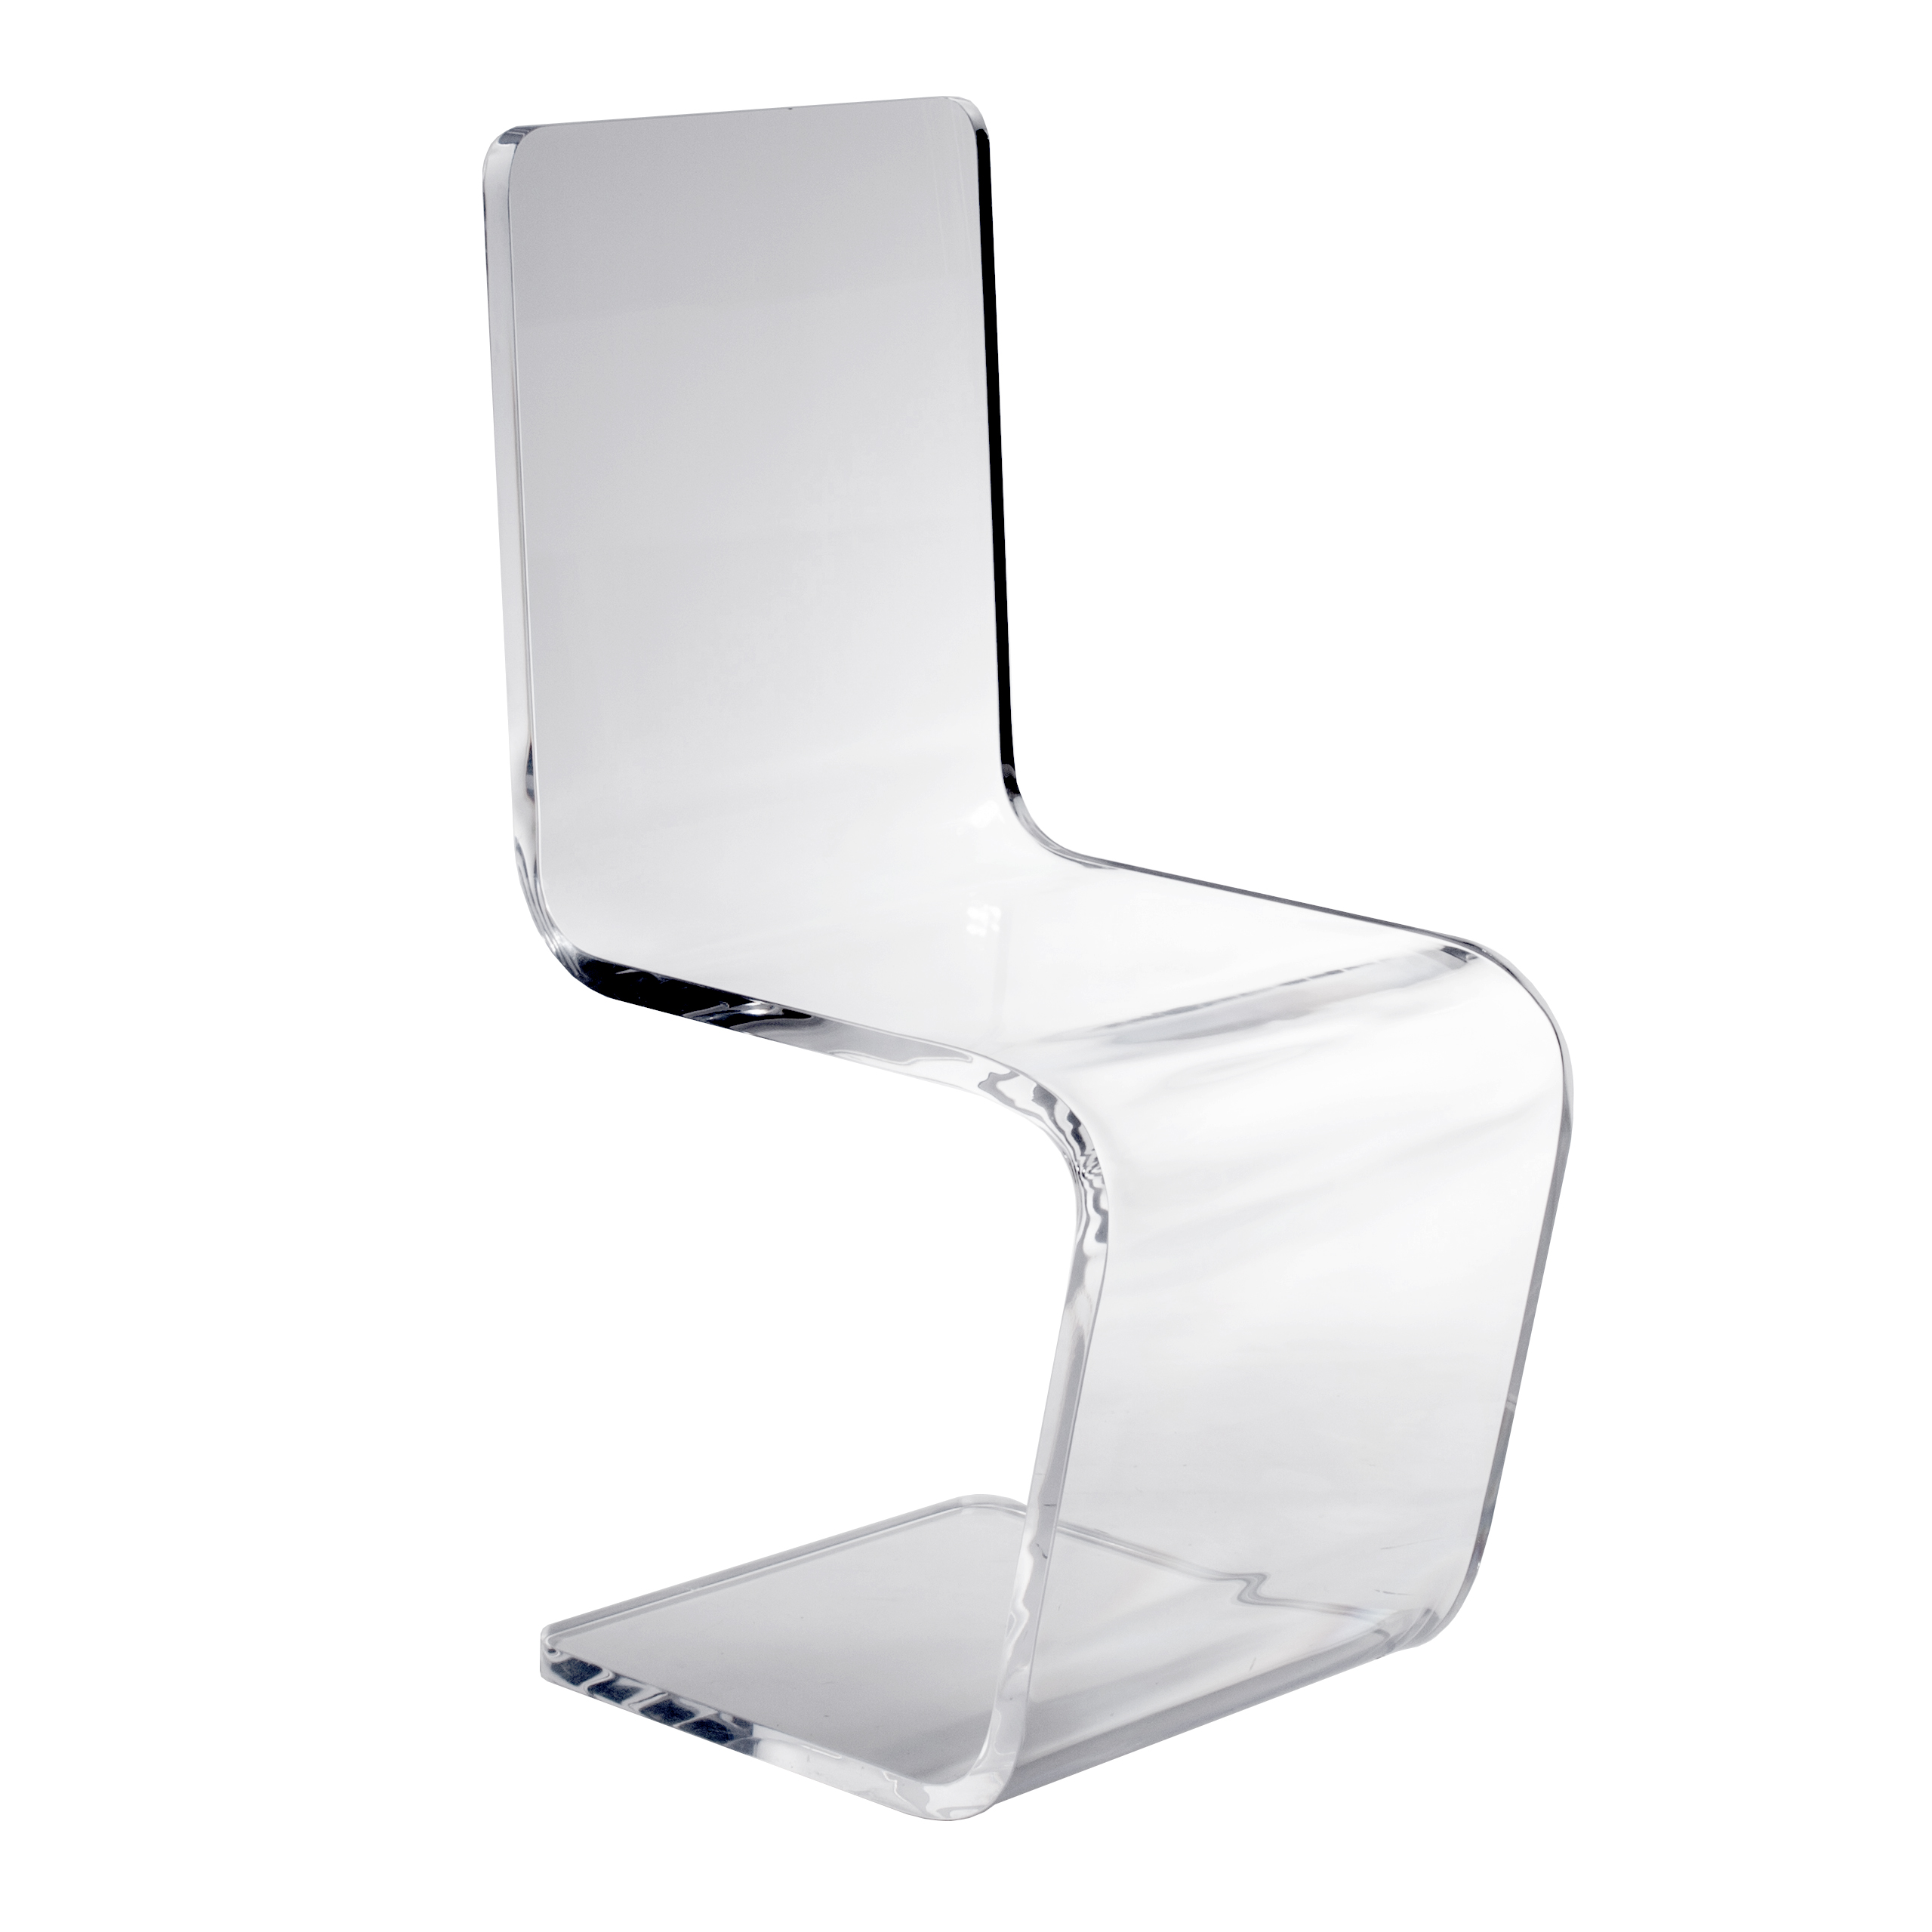 height acrylic clear property modern furniture desk chair adjustable regarding ideas swivel